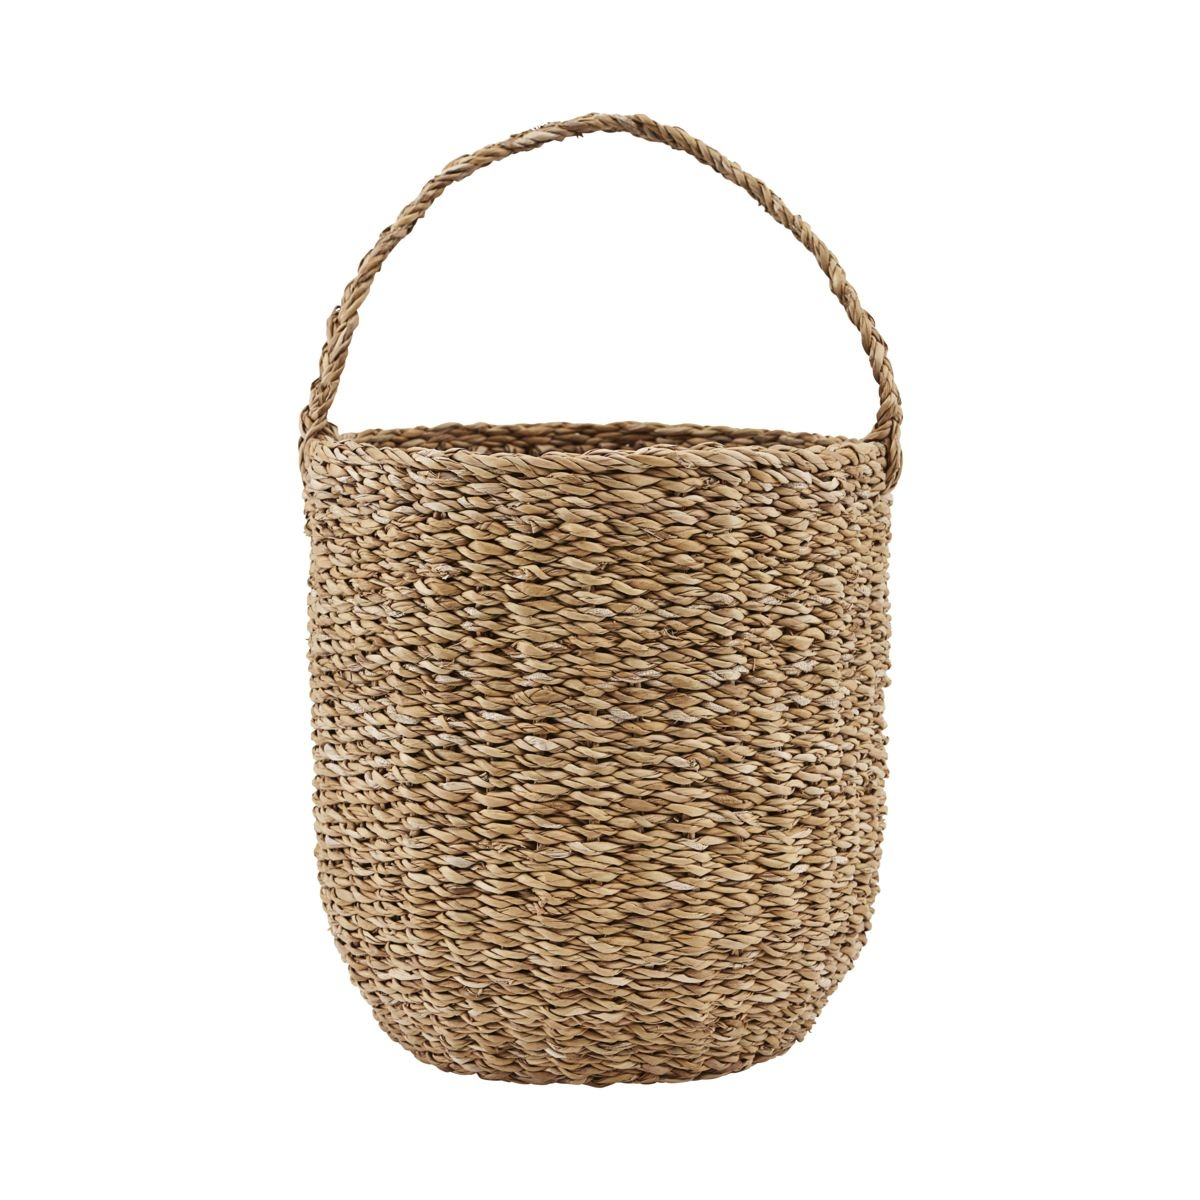 House Doctor Seagrass basket - natural - Ø24xh27 - Society of Lifestyle